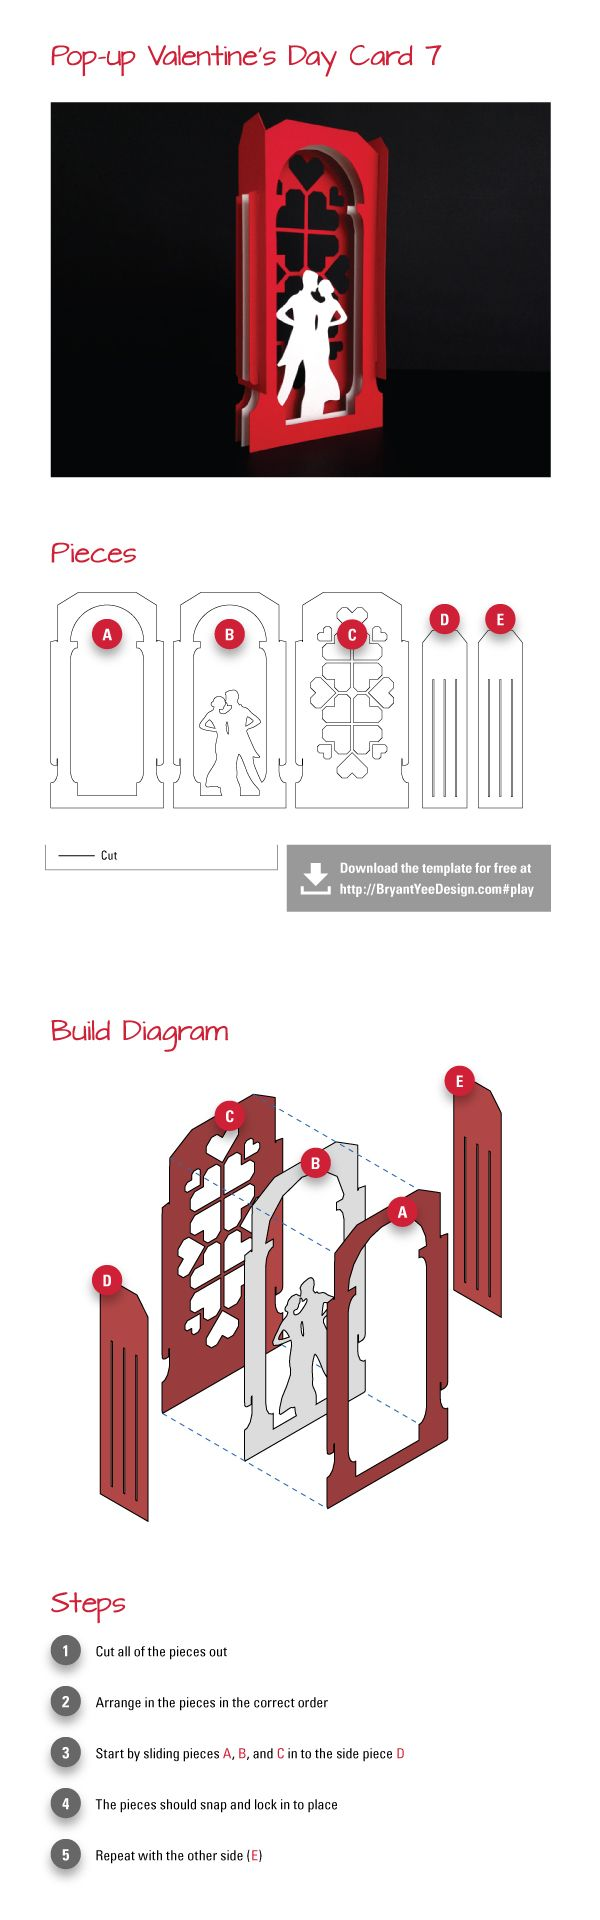 Do It Yourself Pop Up Valentine S Day Card Study 7 Paper Pop Pop Up Cards Paper Engineering